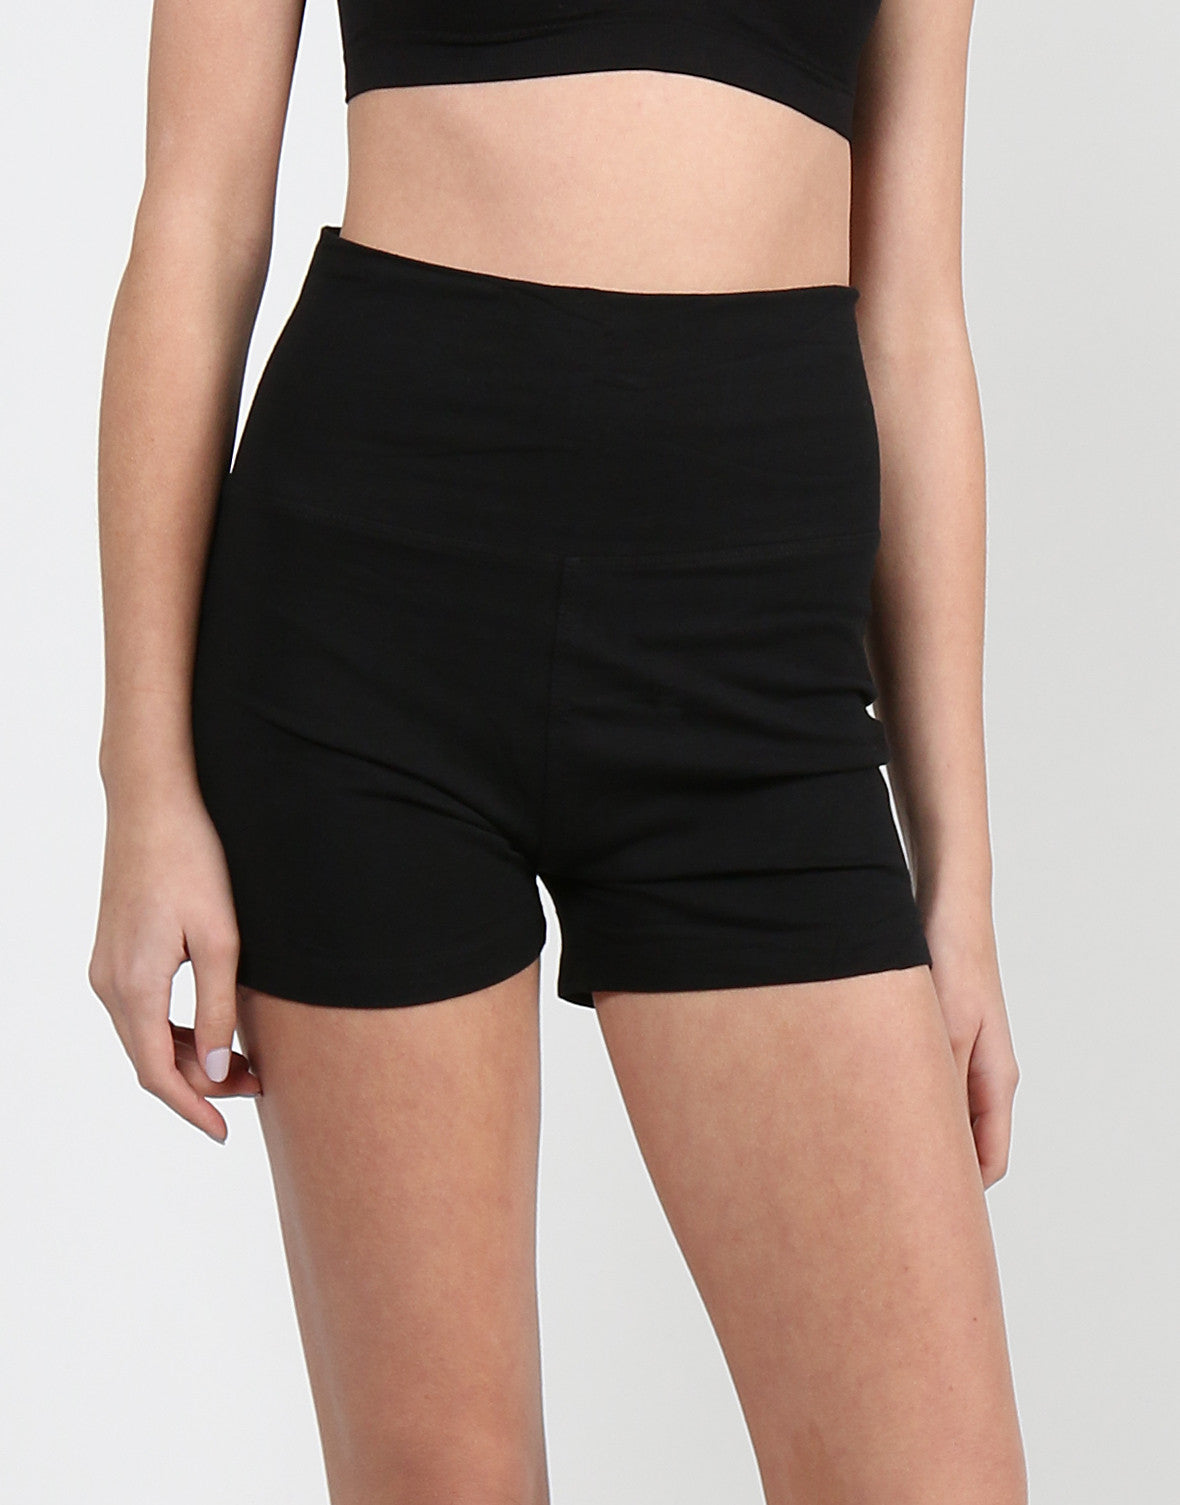 Fold Over Yoga Shorts - Black